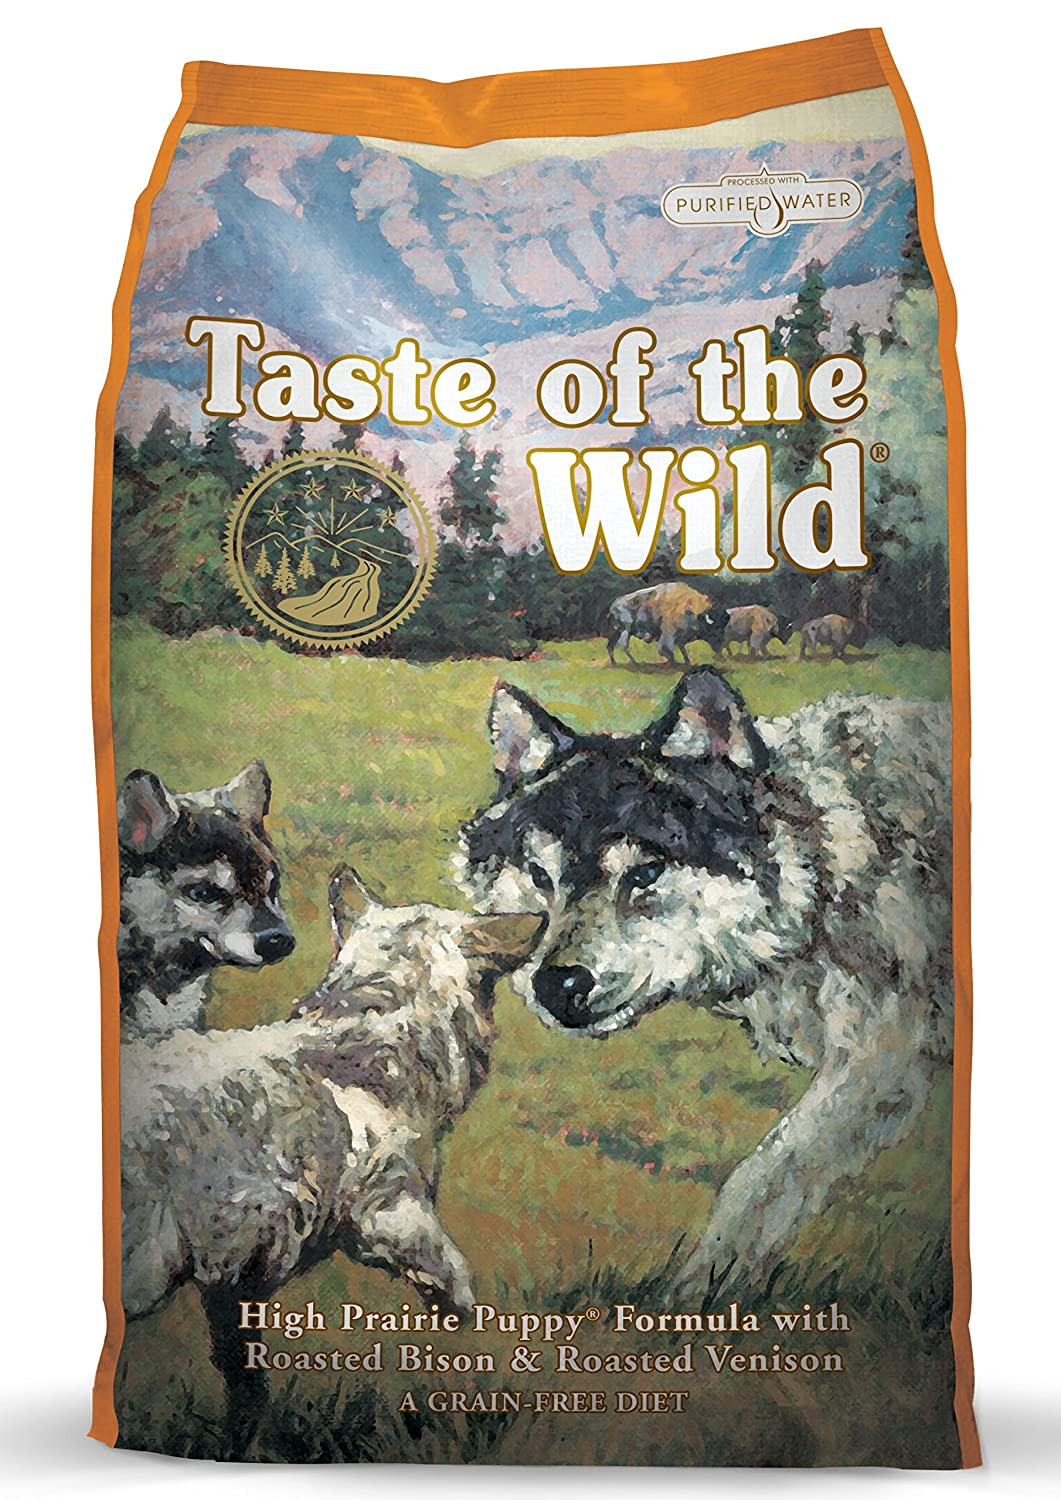 Taste Of The Wild Puppy Food